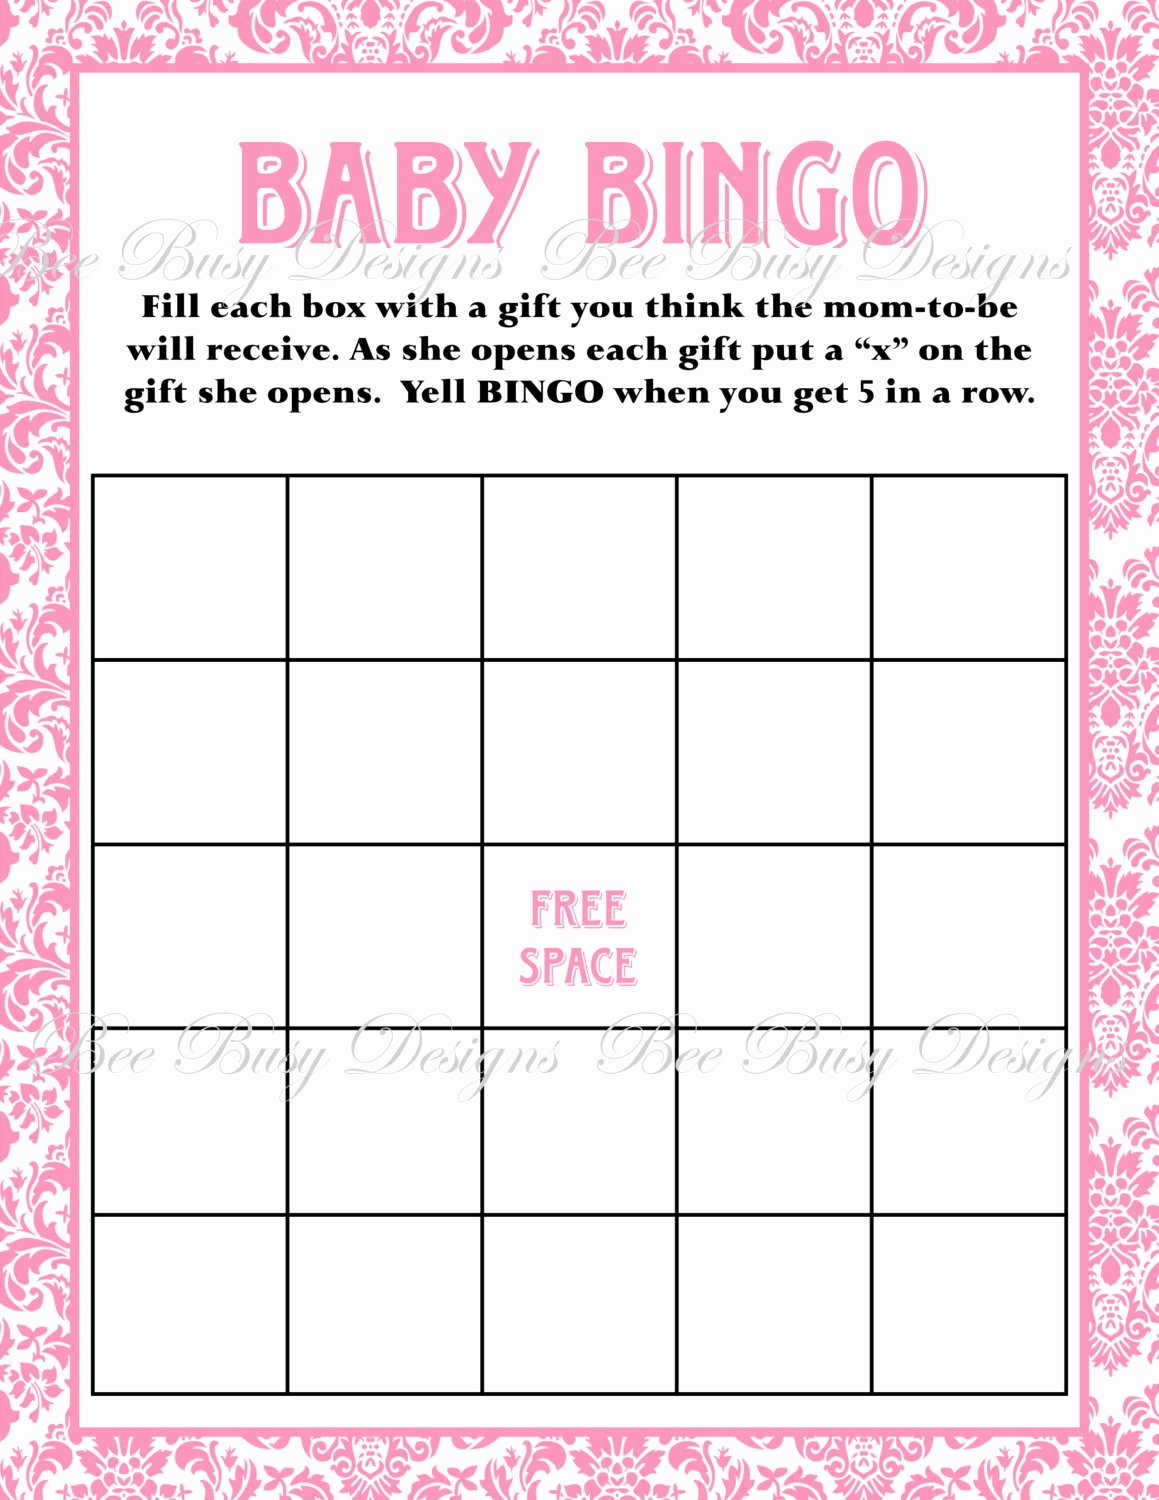 Baby Bingo Cards Printable Search Results